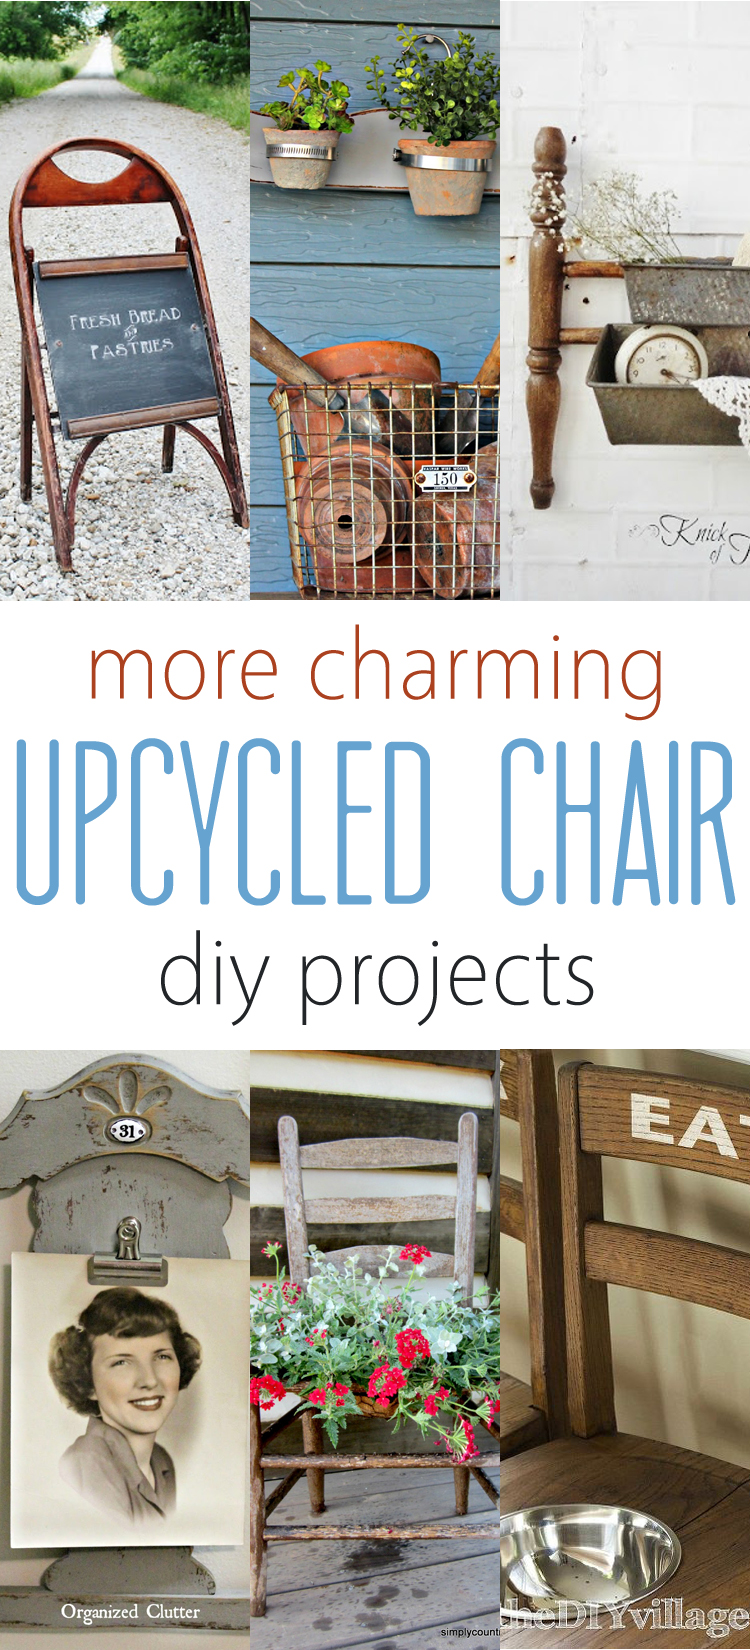 http://thecottagemarket.com/wp-content/uploads/2015/11/RepurposedChair-tower-001.jpg